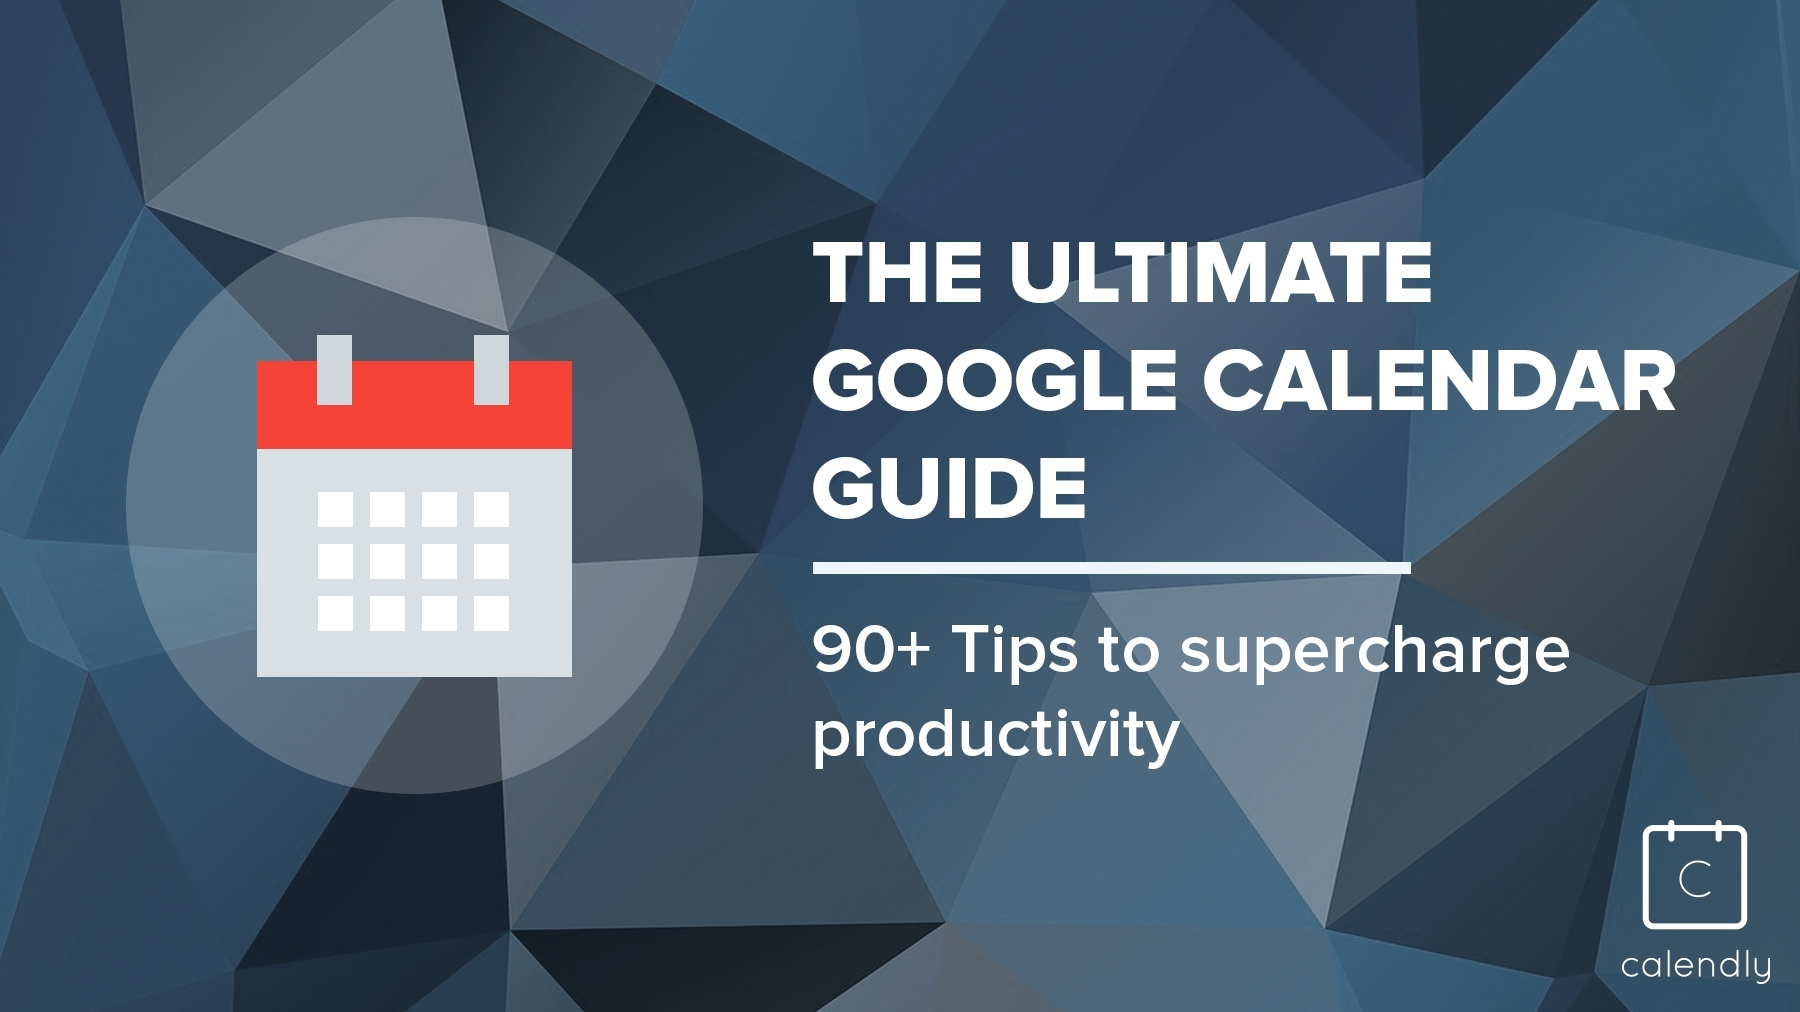 Blog - The Ultimate Google Calendar Guide: 90+ Tips with regard to Birthday Time Slot Scheduling Calendar